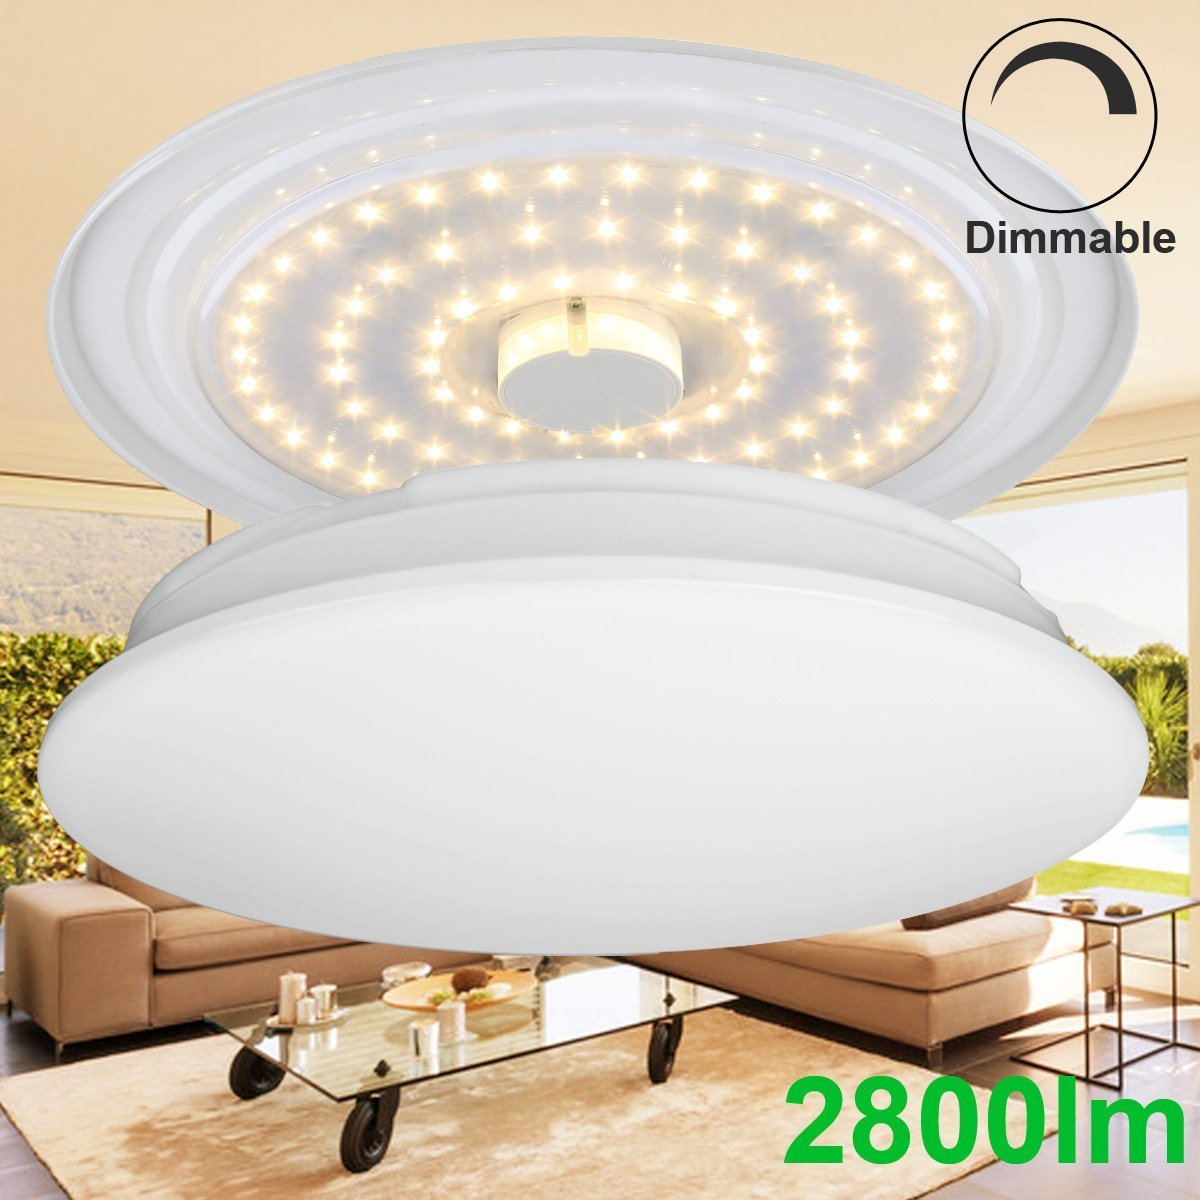 Mount Ceiling Light Fixtures 225W Incandescent 80W Fluorescent Bulbs Equivalent 2800lm Warm White 3000K Lighting For Bedroom Living Room